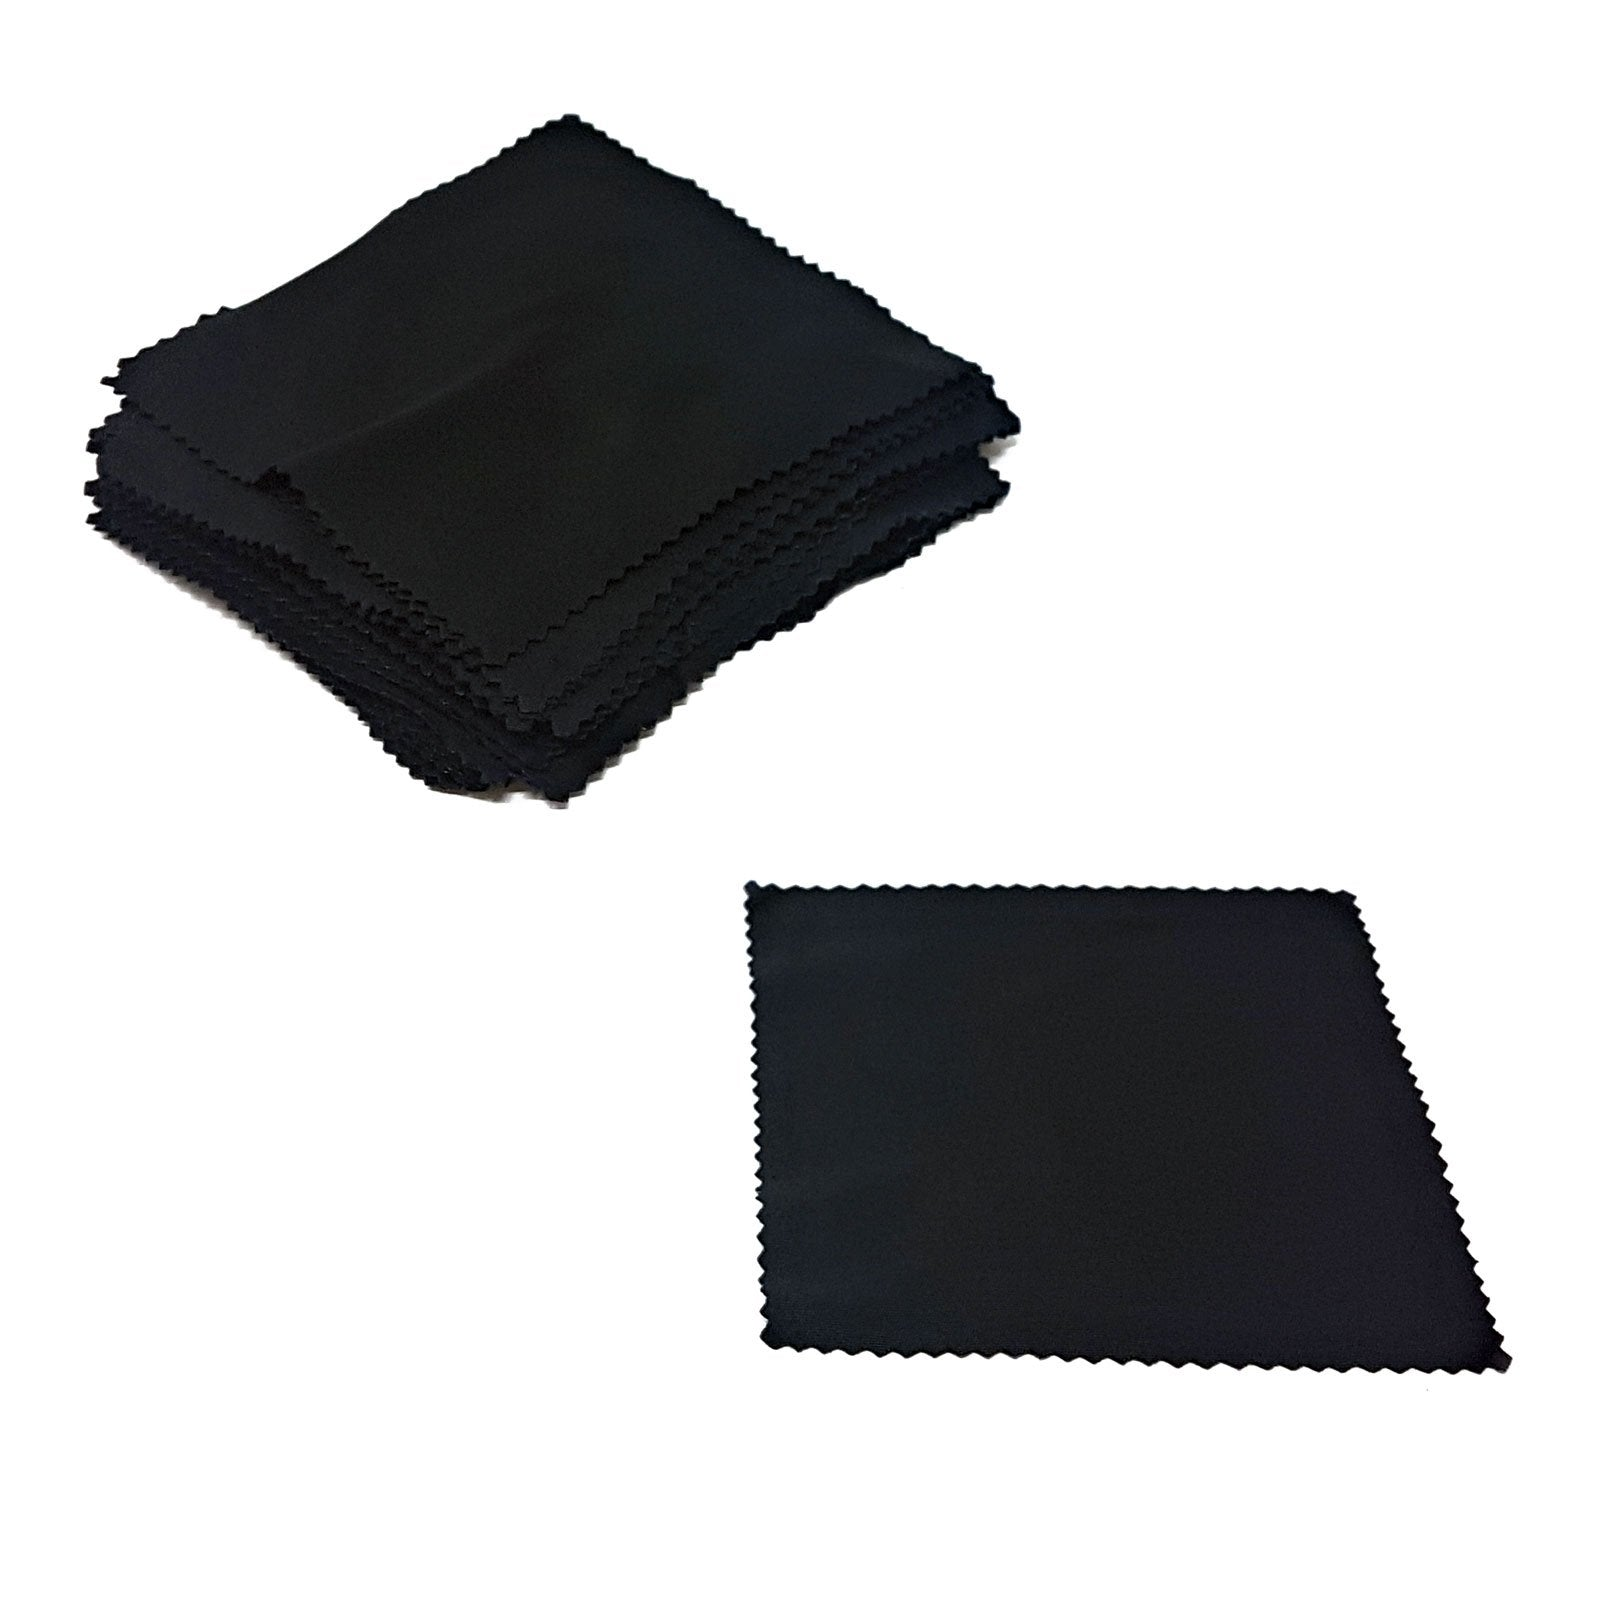 Wholesale Lens Cleaning Cloths - Black